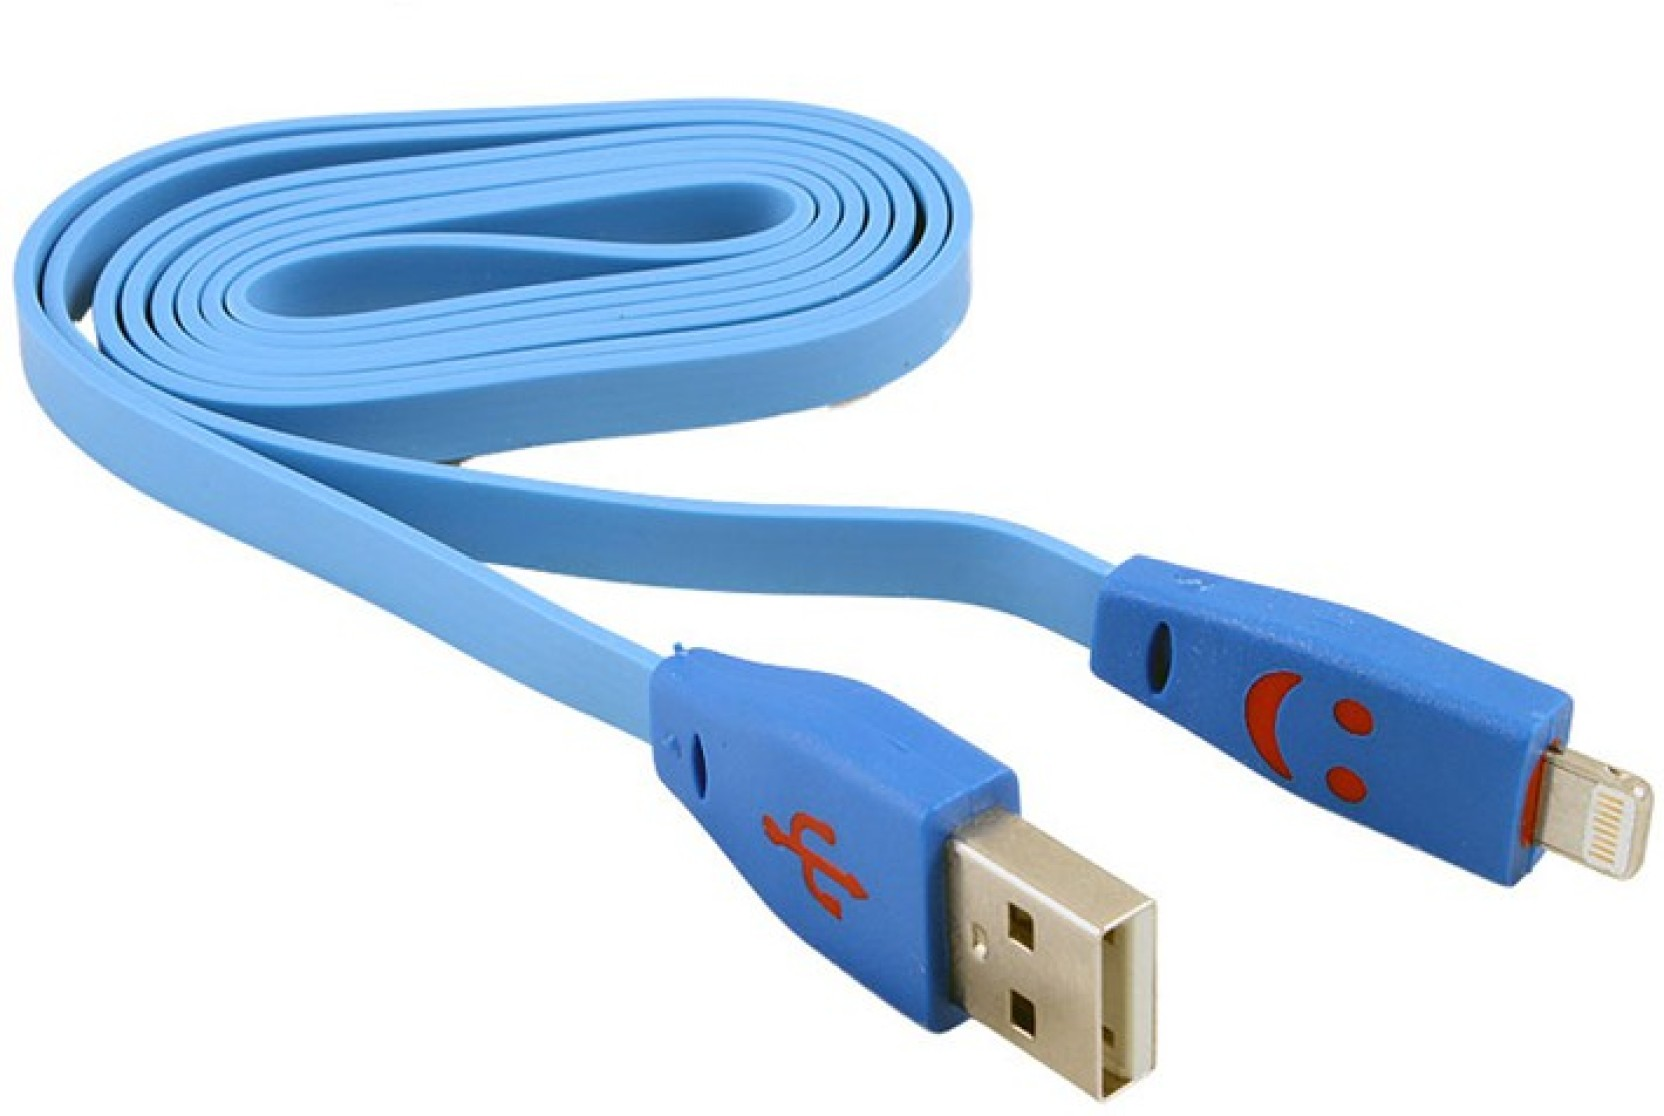 Cellista High Speed Data Cable Flat Wire With LED For iPhone 5 USB ...